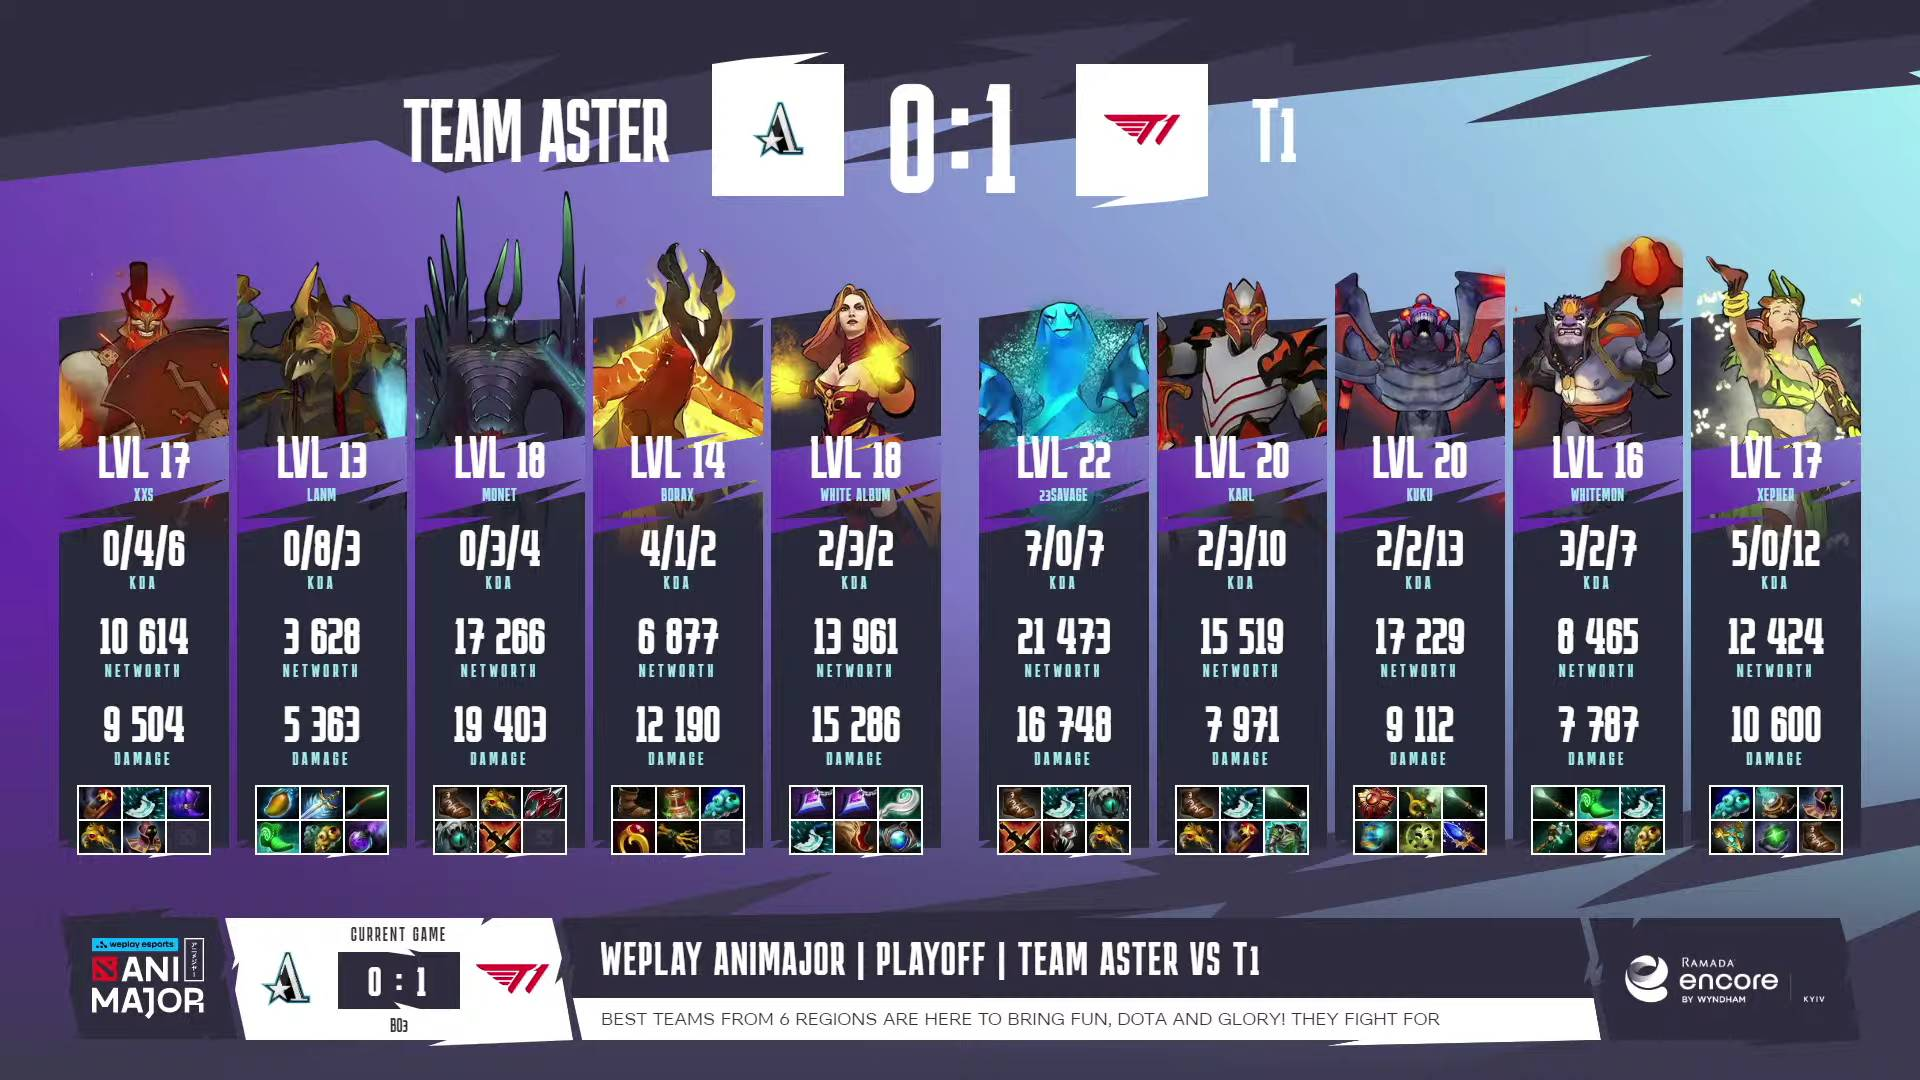 2021-WePlay-AniMajor-T1-def-Team-Aster-Game-1 Kuku-led T1 punches ticket to TI10 DOTA 2 ESports News  - philippine sports news